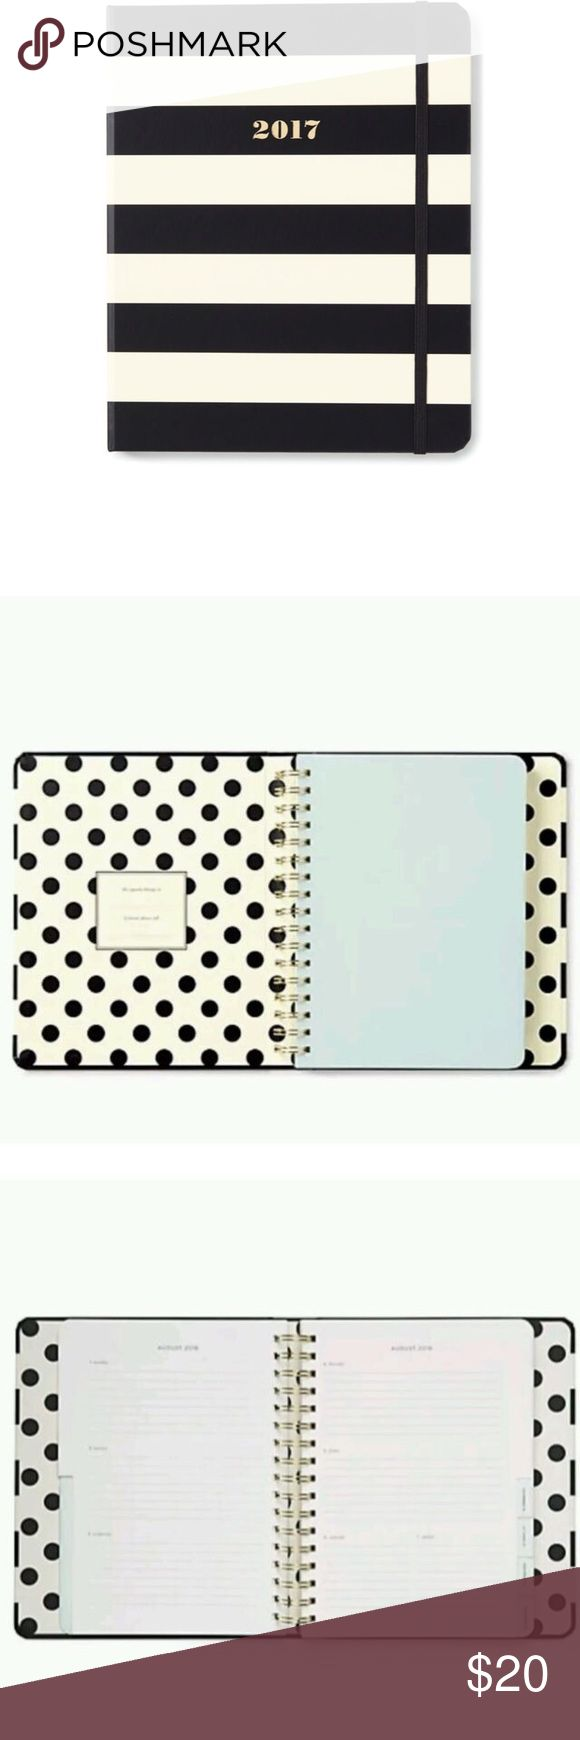 Kate Spade - Set the Stage Medium 17-month Agenda Kate Spade - Set the Stage Medium 17-month Agenda Black Stripe. New in original Packaging. kate spade Other